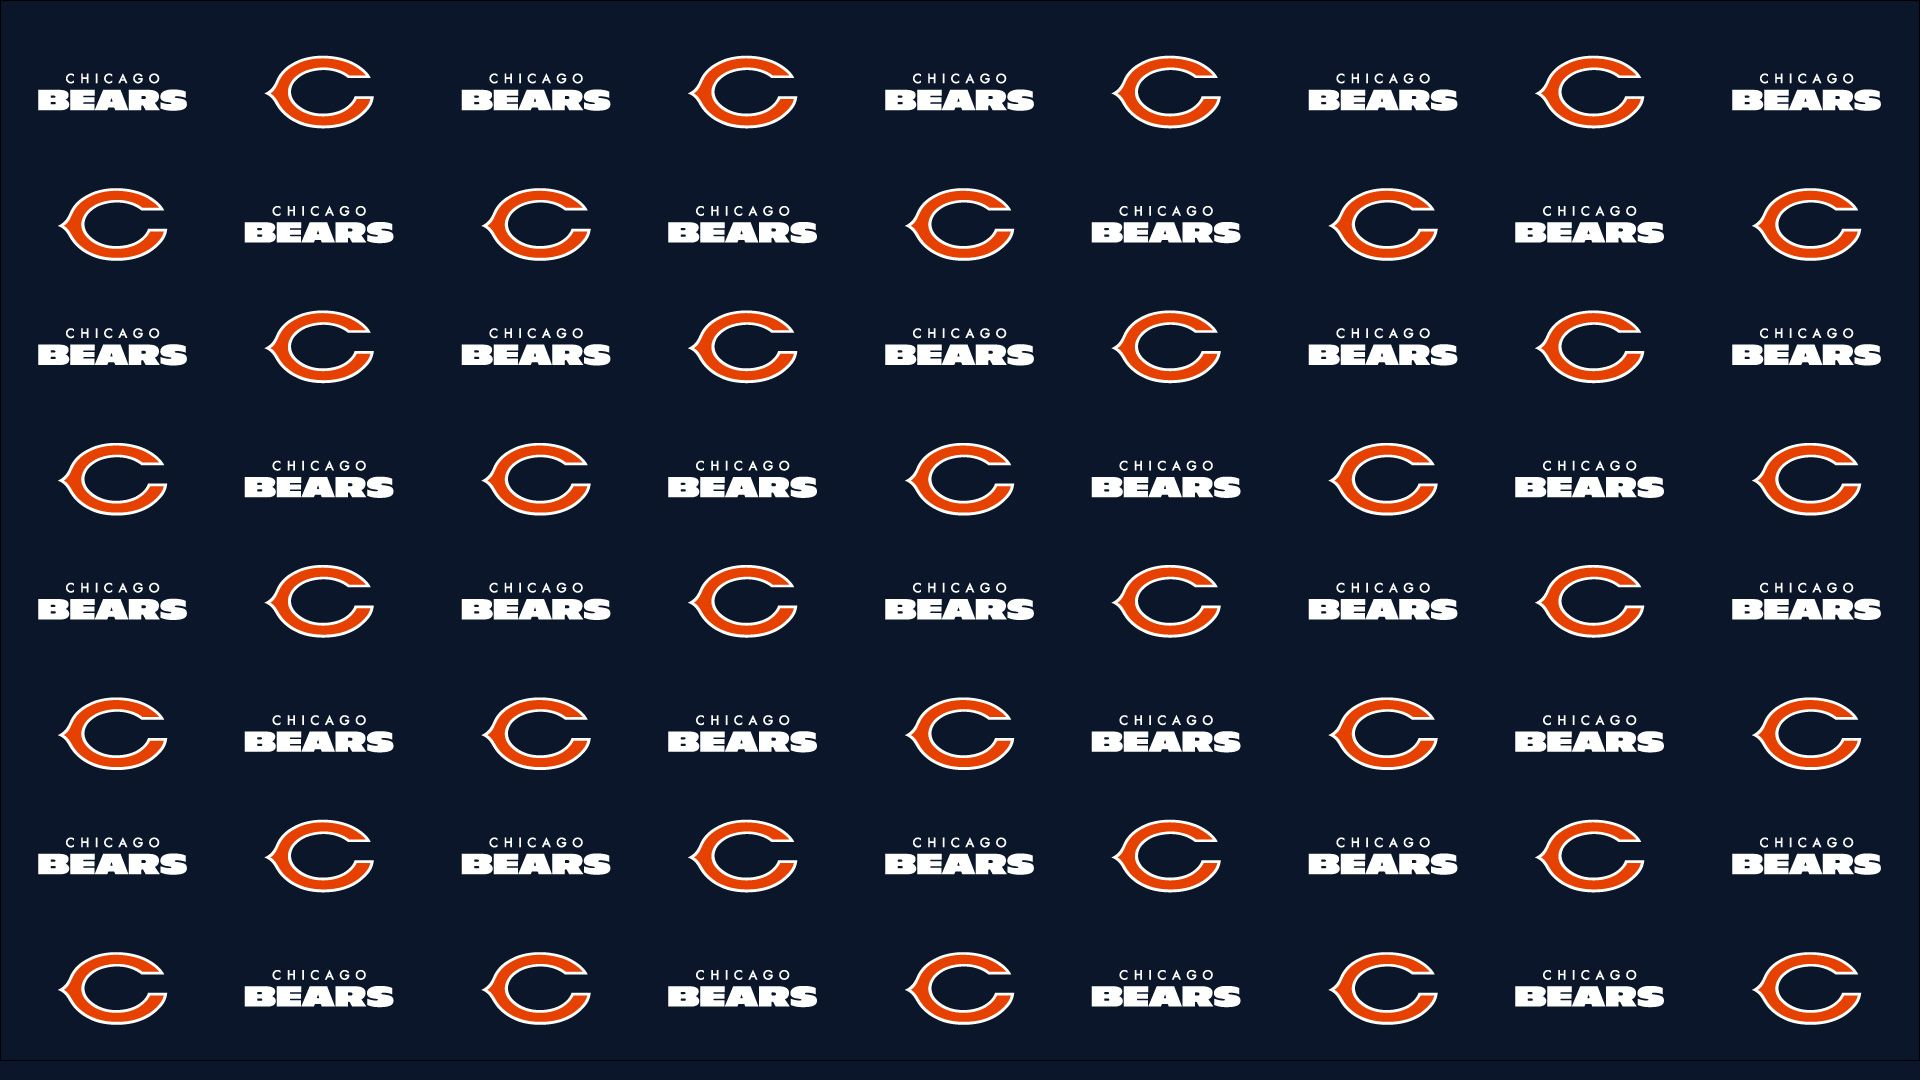 Video Conference Backgrounds Chicago Bears Official Website 1920x1080